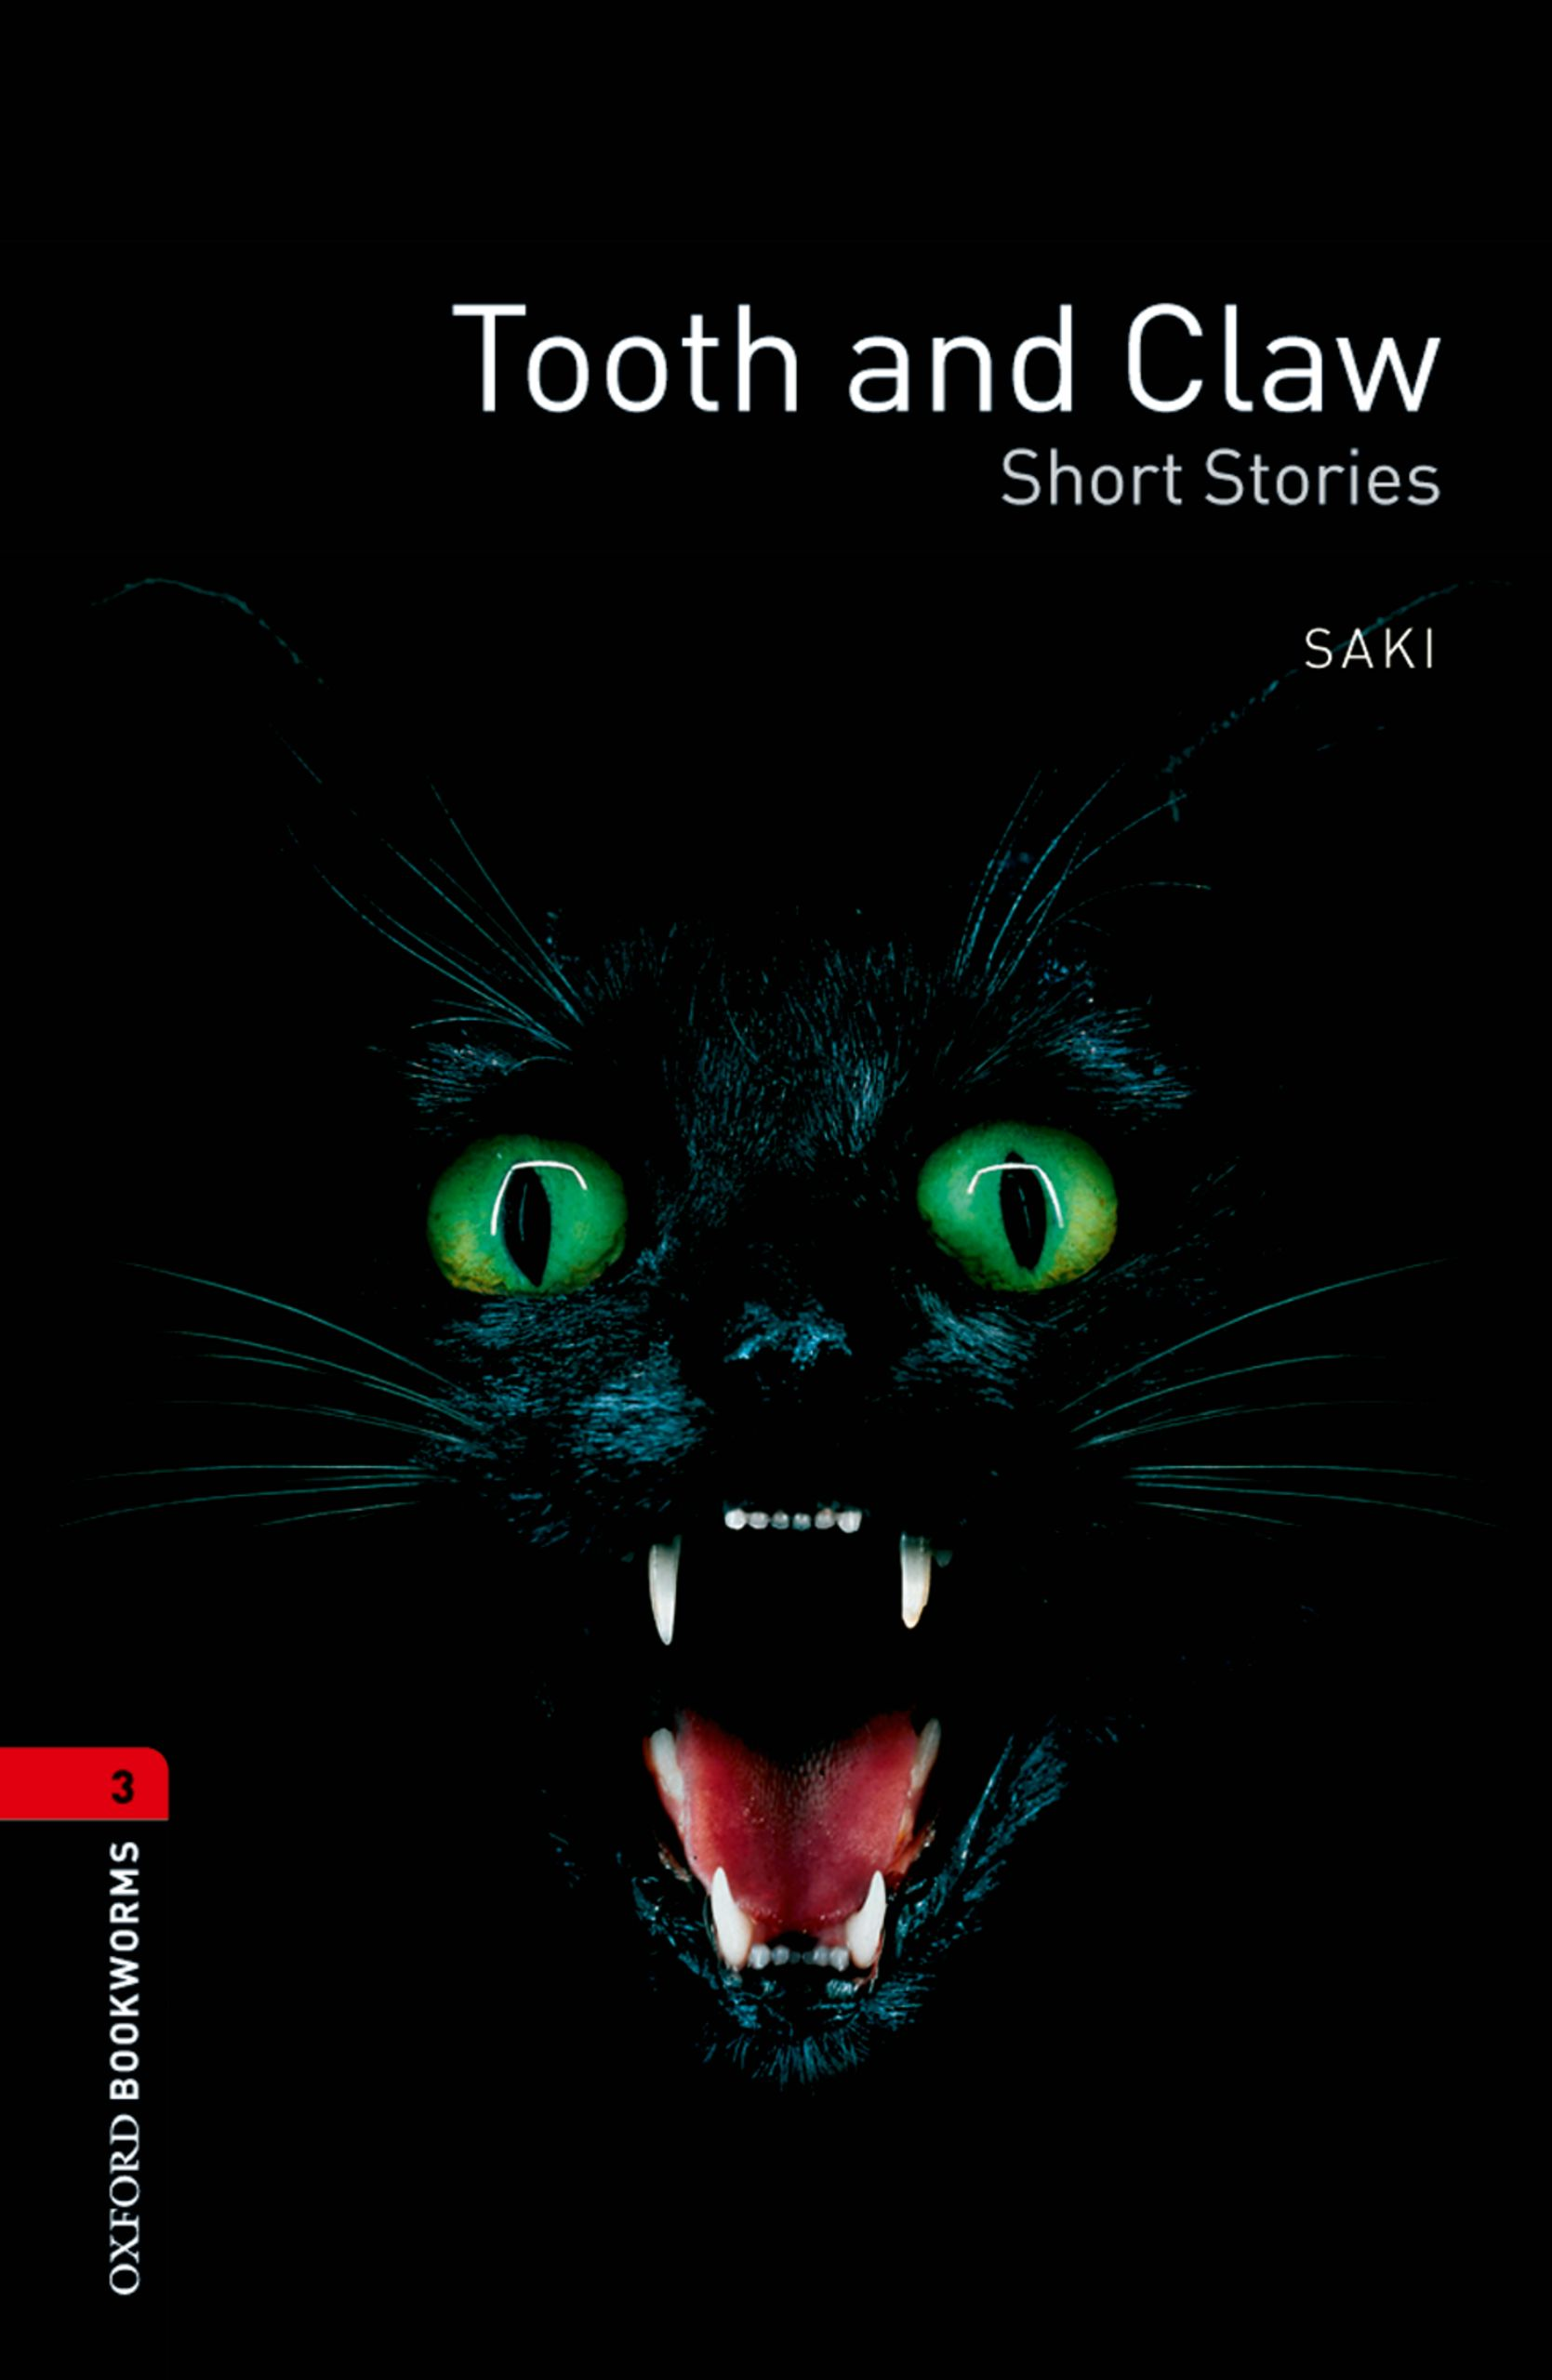 Saki Tooth and Claw – Short Stories